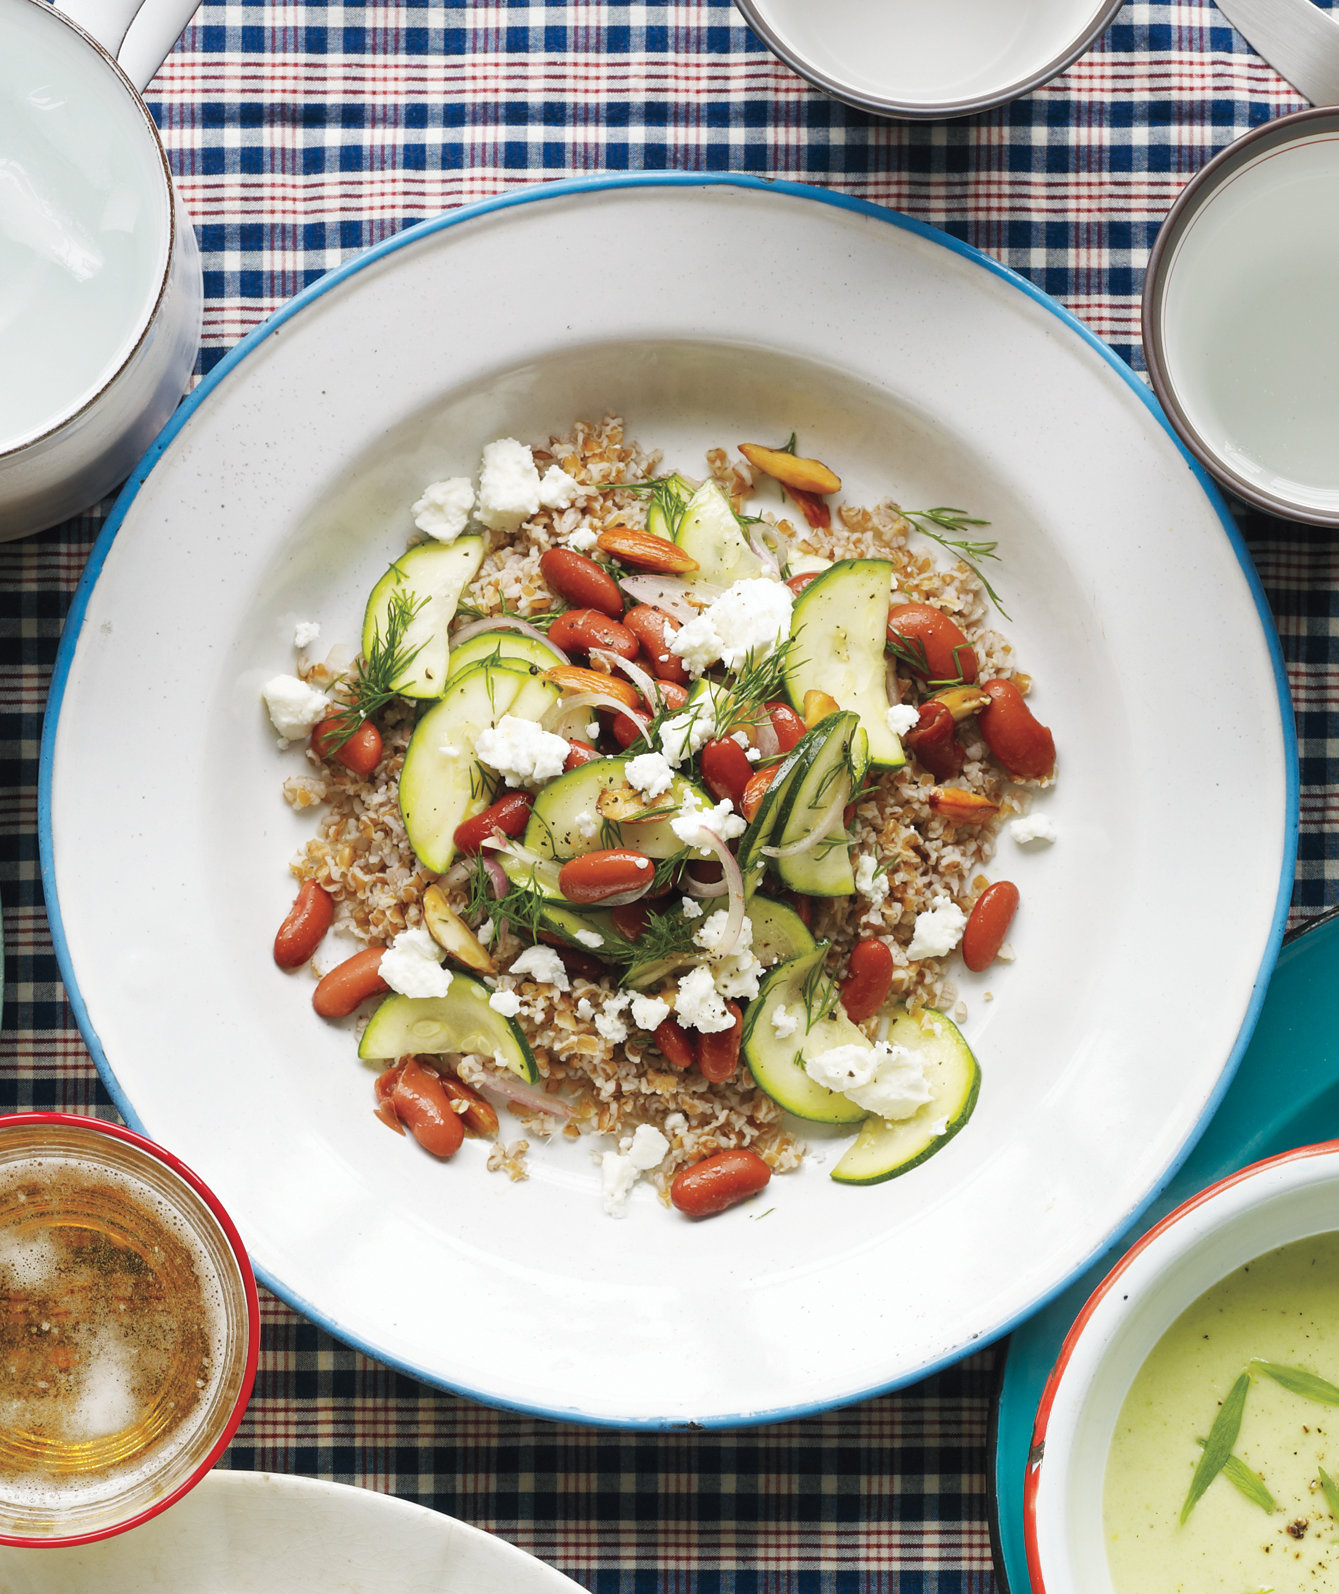 Easy And Fast Dinner Ideas: Zucchini And Bean Salad With Bulgur